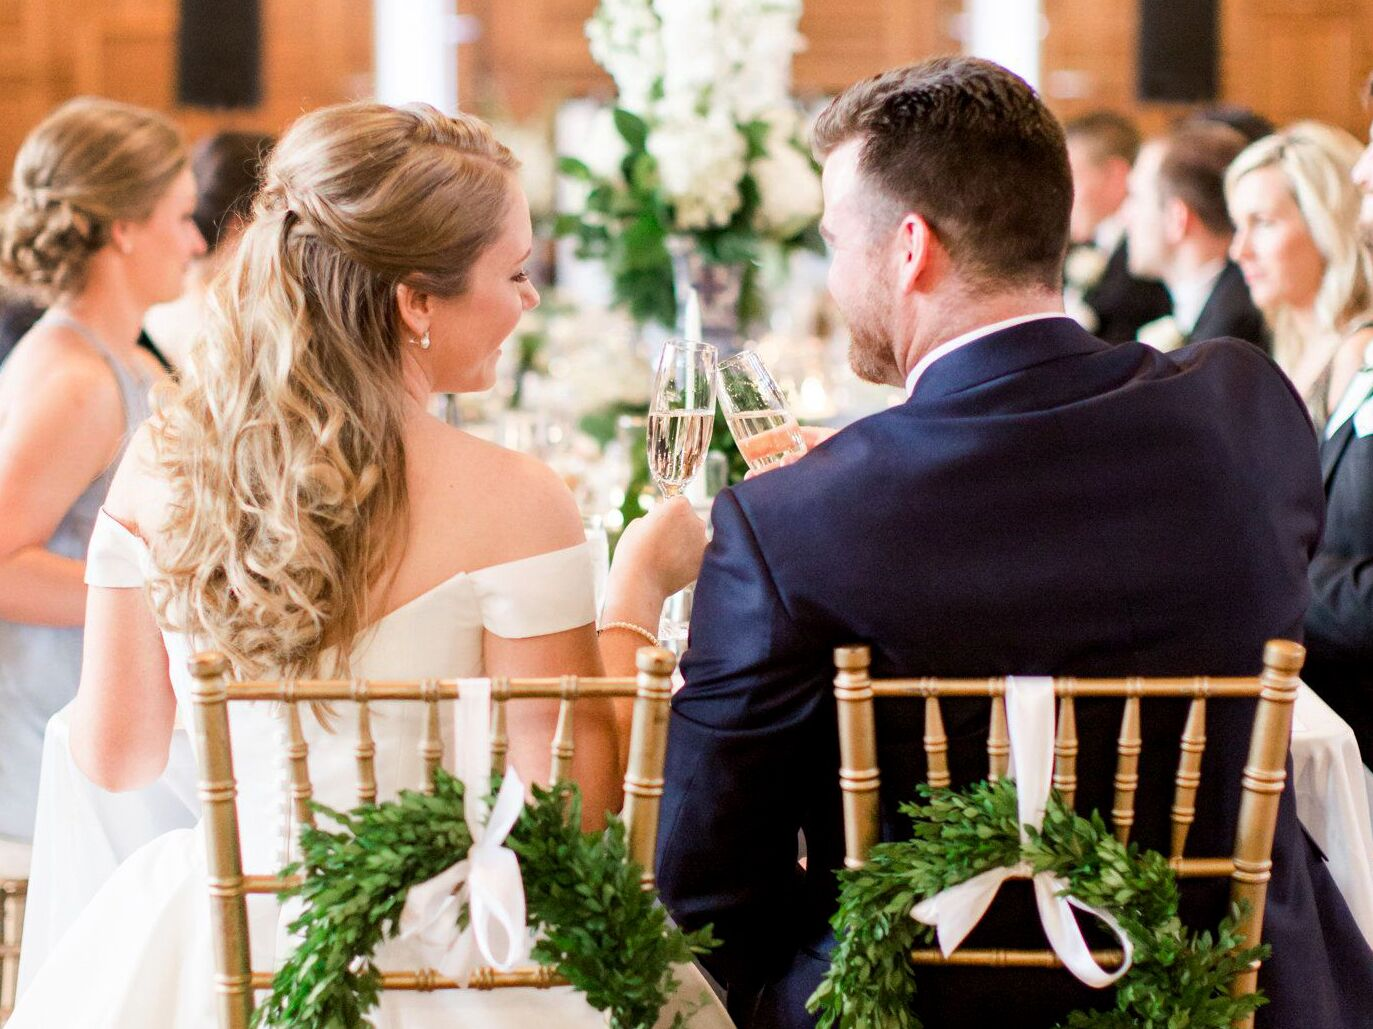 budgeting for the wedding: who pays for what?